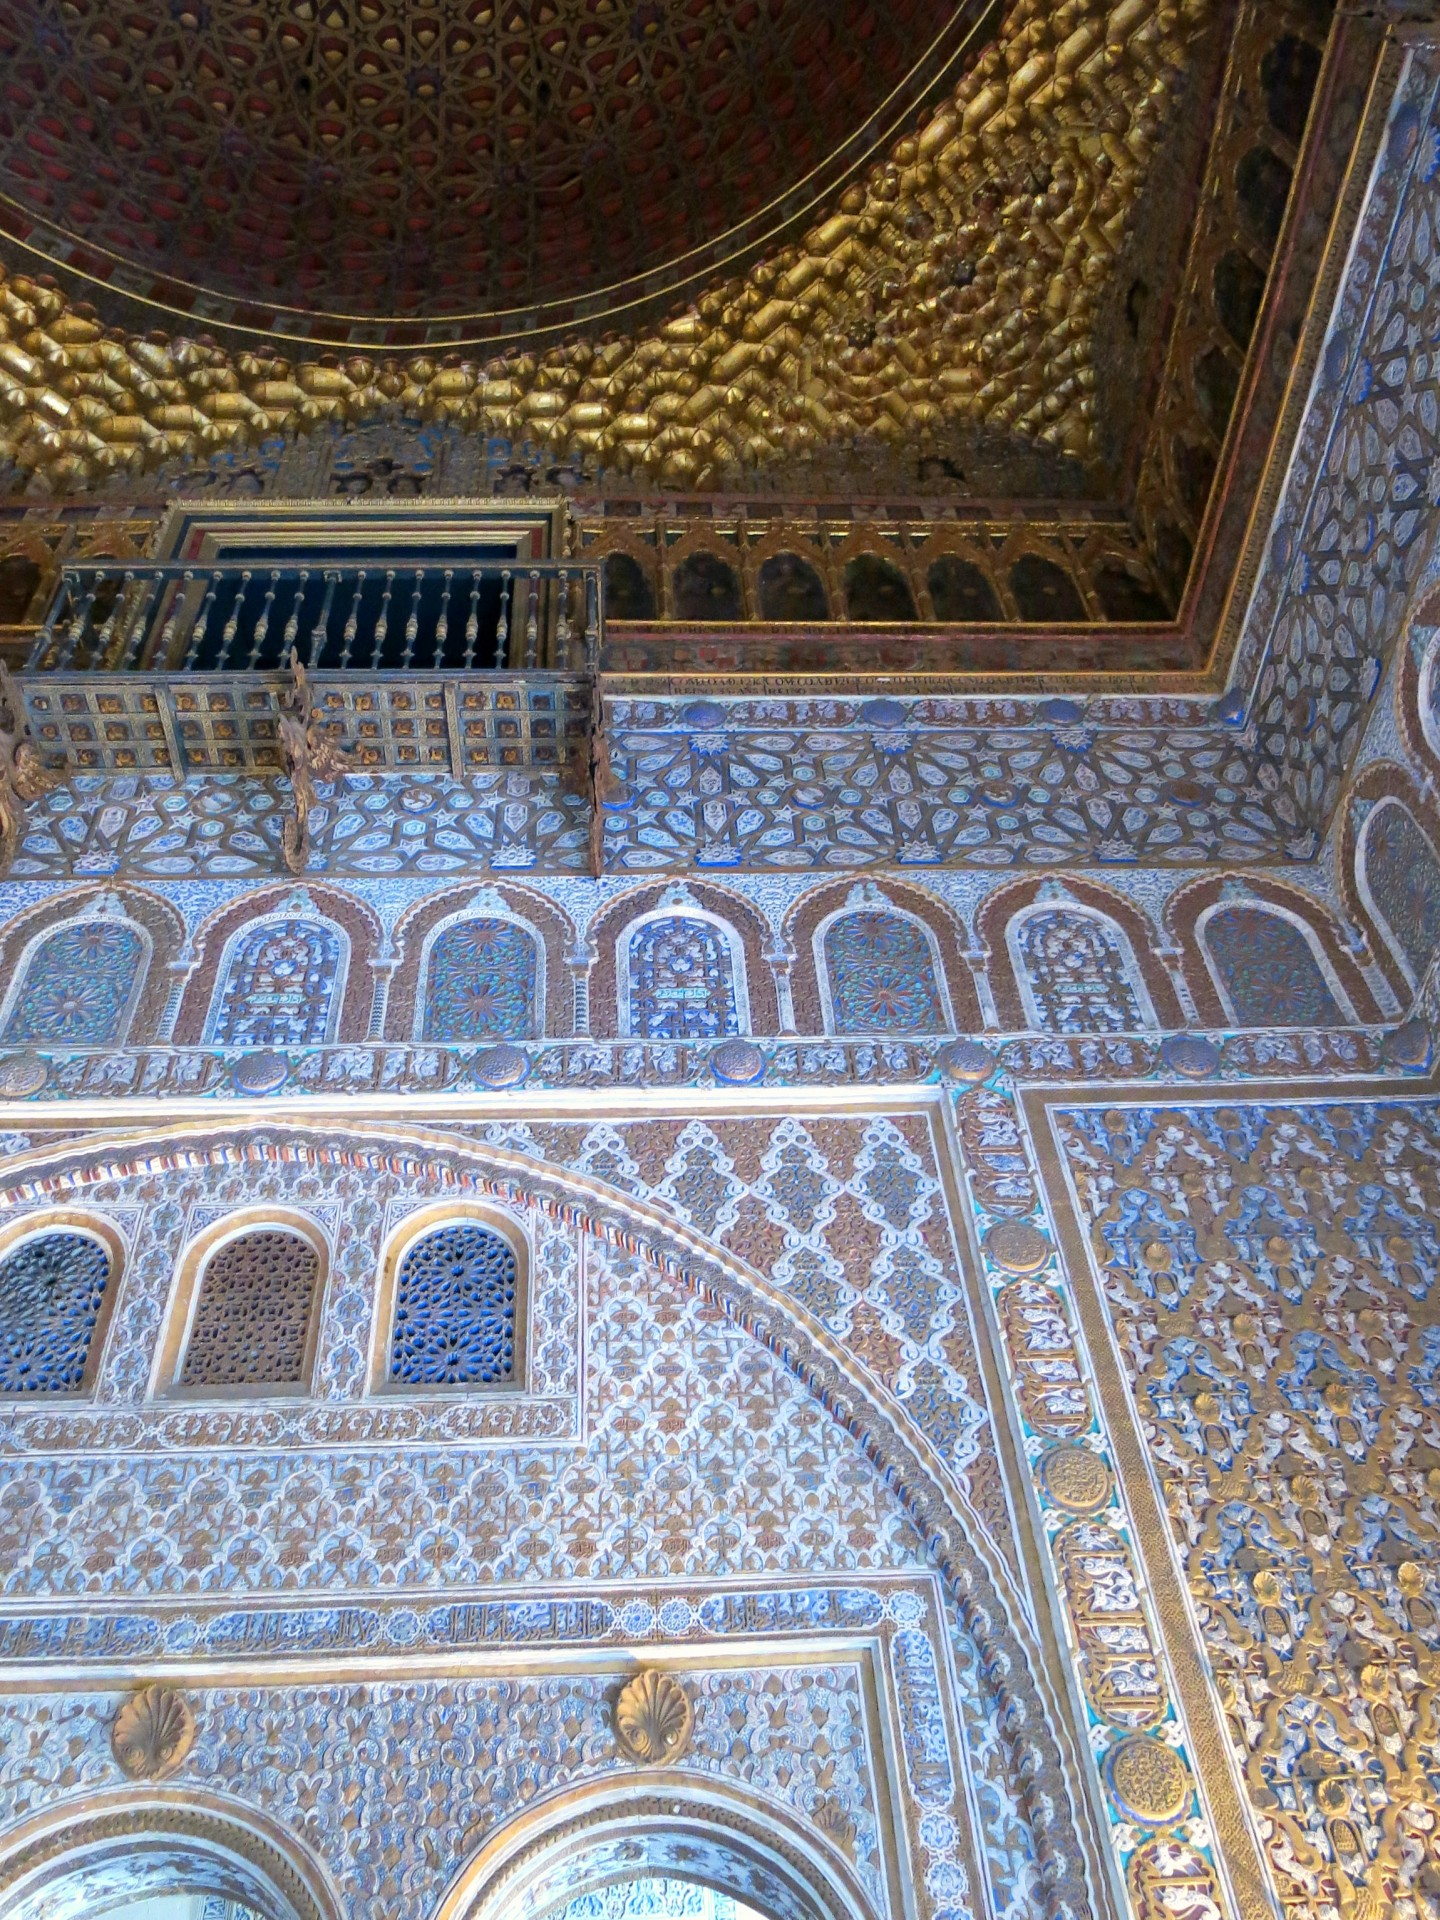 The Real Alcázar in Seville is stunning and must be on your list of things to see and do whilst visiting Seville in Spain.